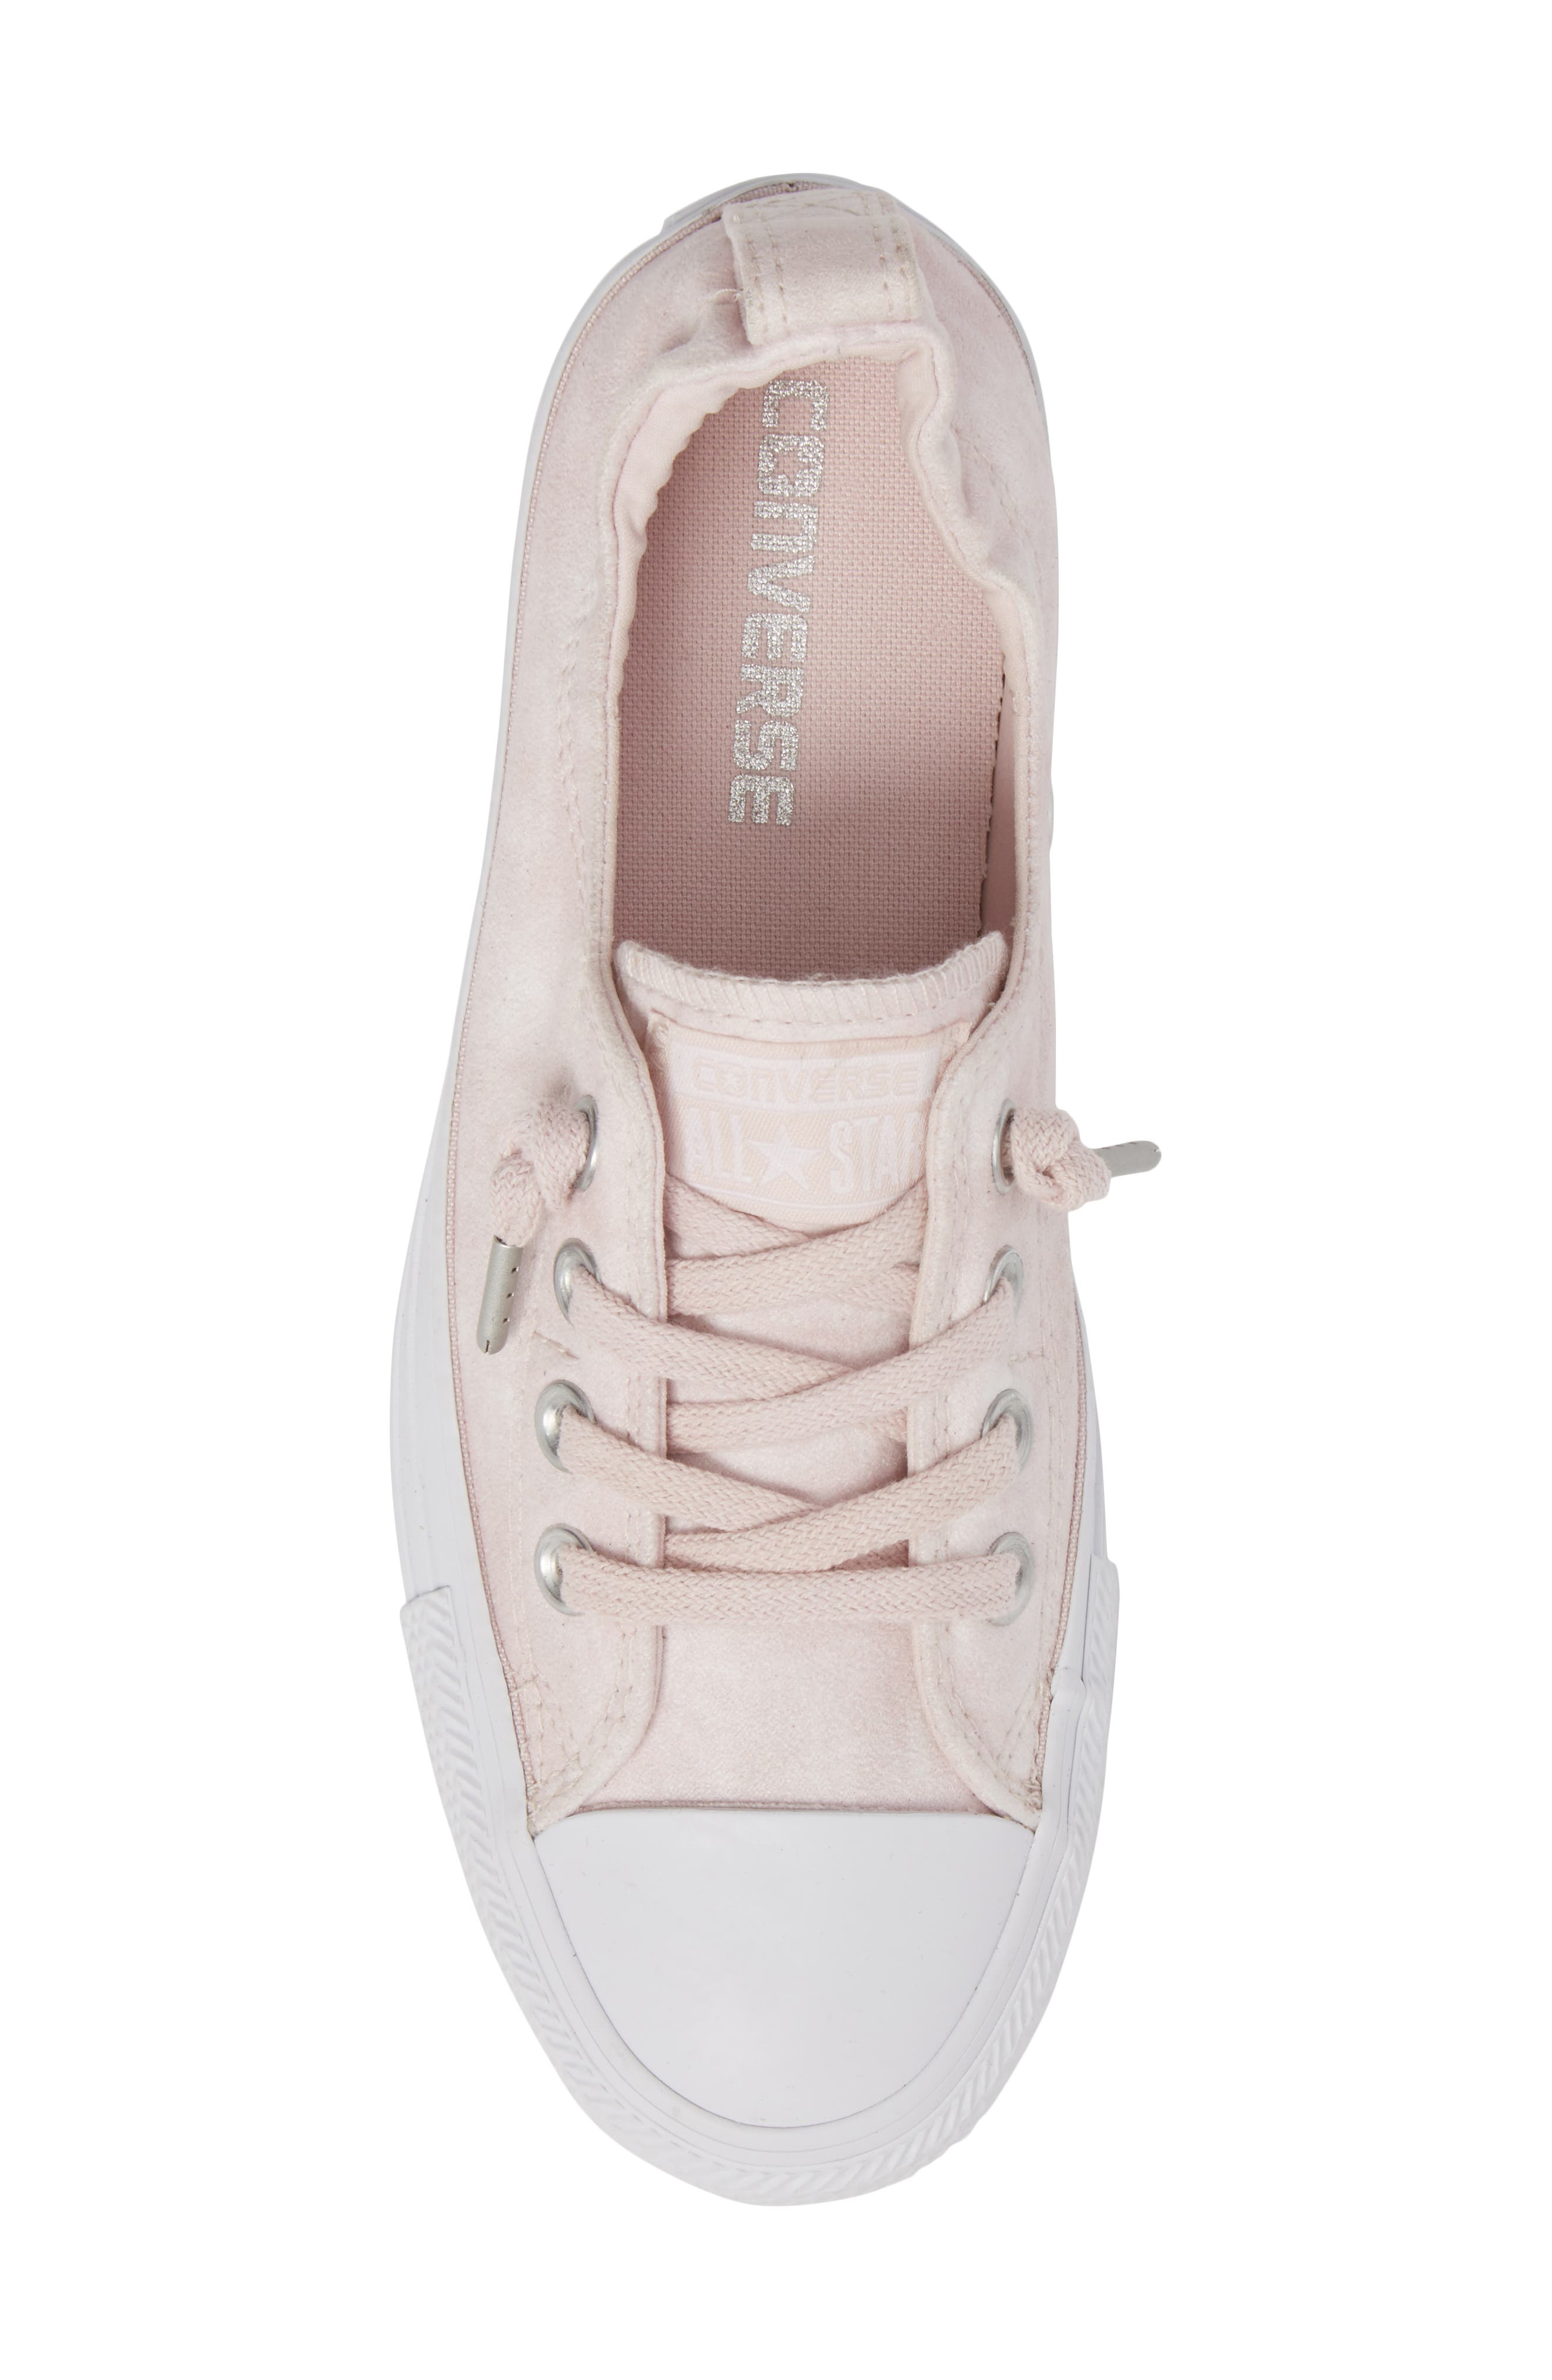 Chuck Taylor<sup>®</sup> All Star<sup>®</sup> Shoreline Peached Twill Sneaker,                             Alternate thumbnail 5, color,                             Barely Rose